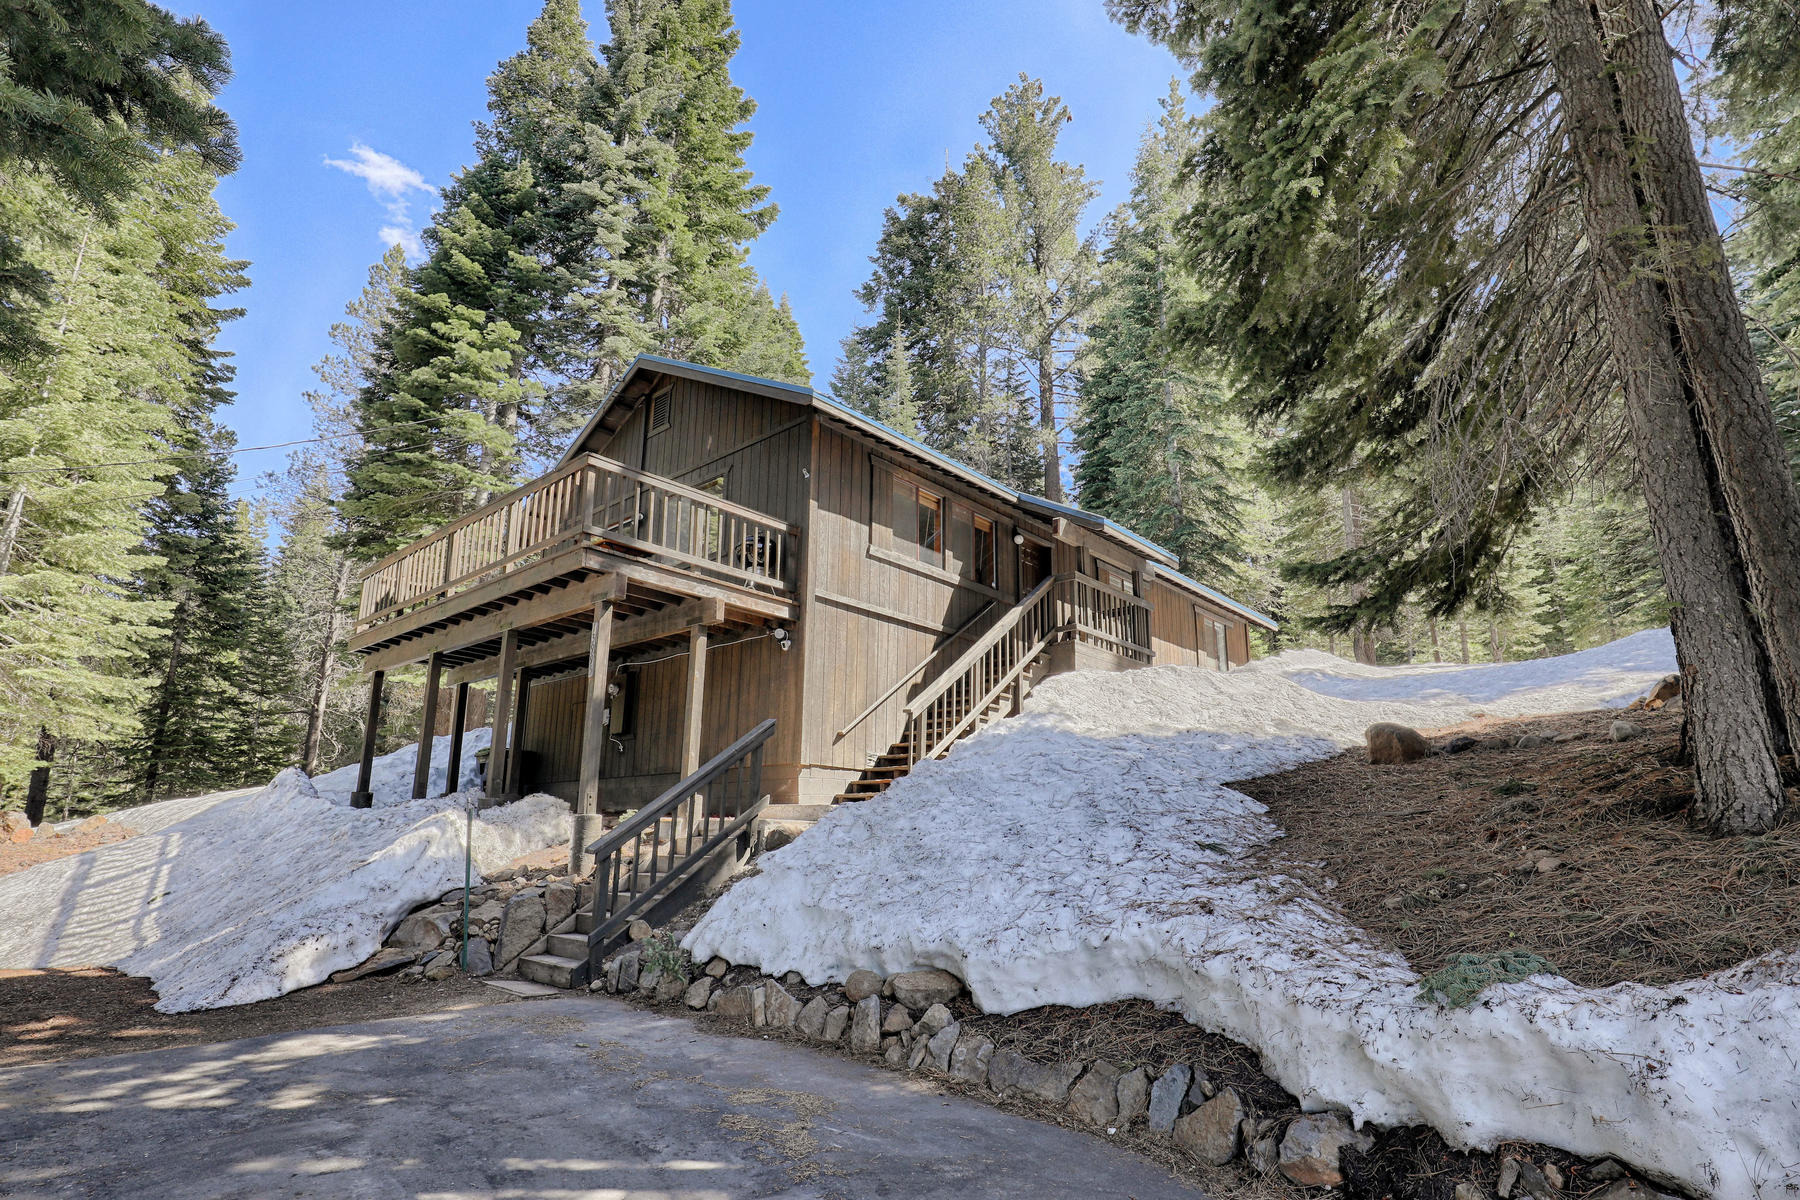 Single Family Home for Active at 13995 Pathway Avenue, Truckee, CA 13995 Pathway Avenue Truckee, California 96161 United States